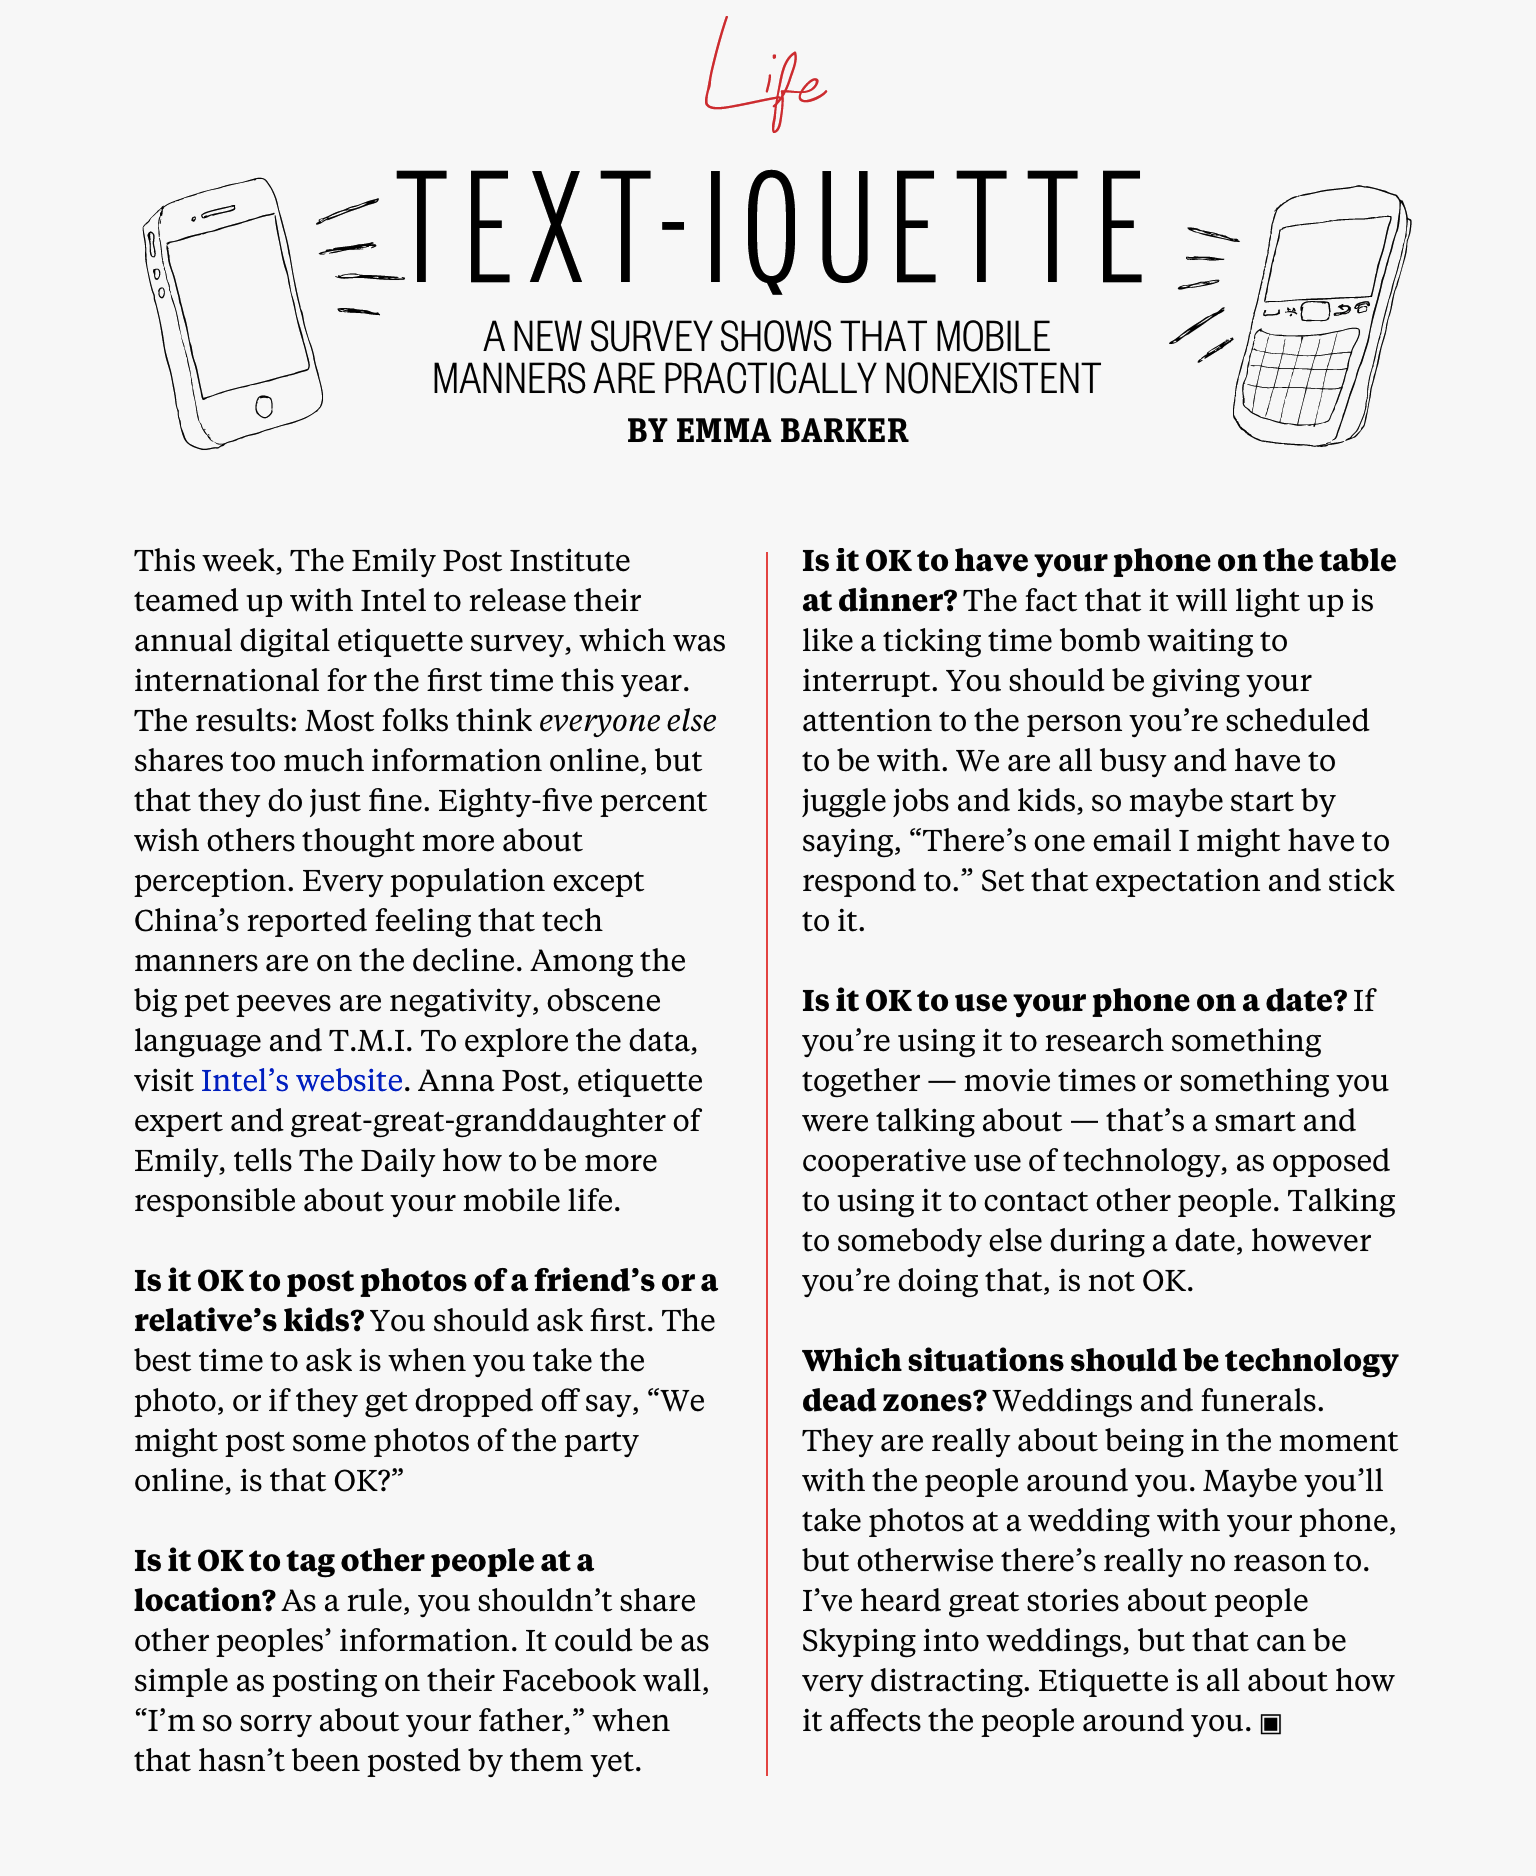 New Rules Of Etiquette Just For Your Smartphone From